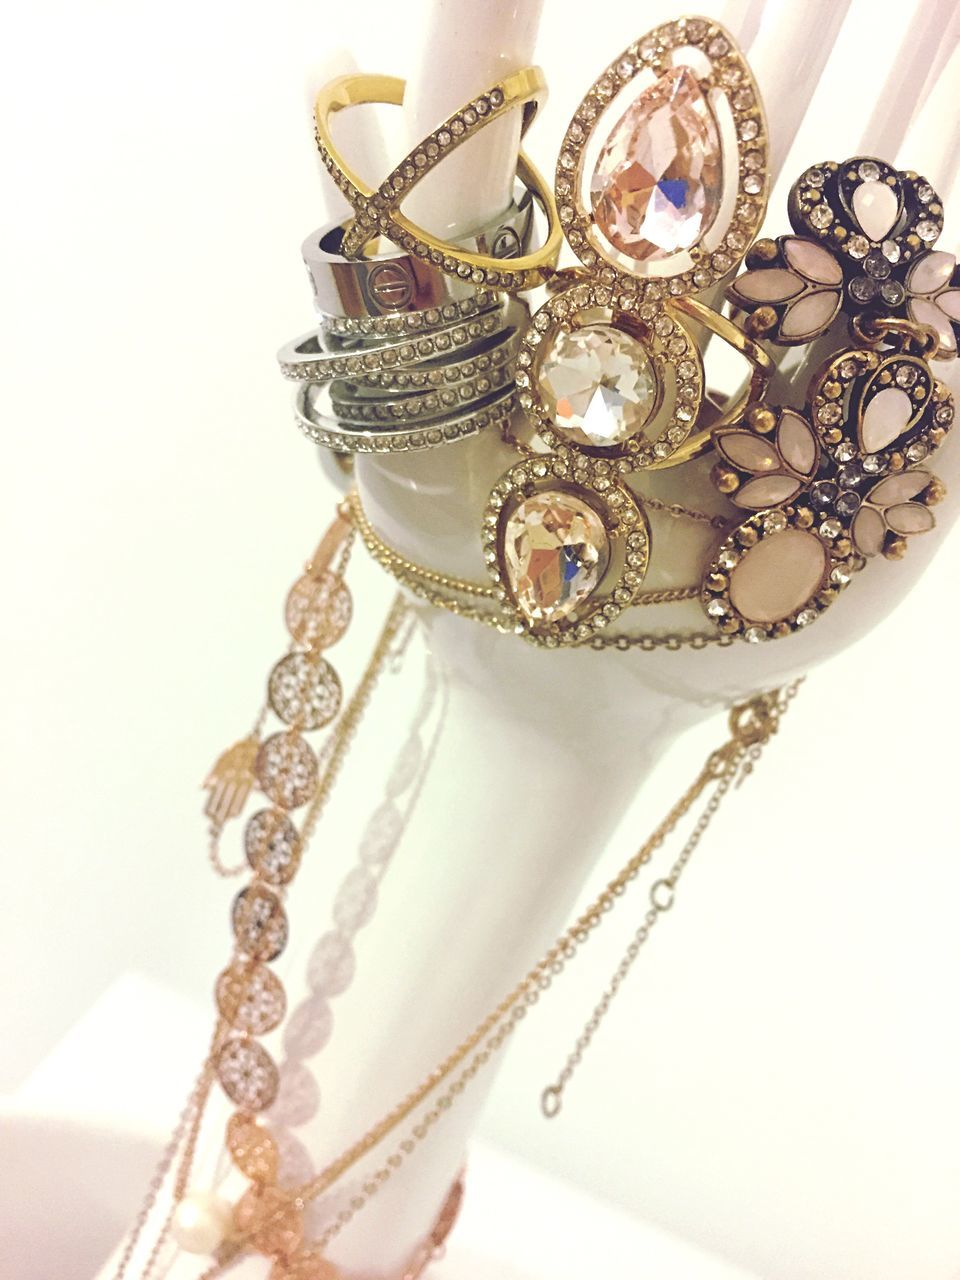 jewelry, necklace, luxury, indoors, close-up, venetian mask, no people, day